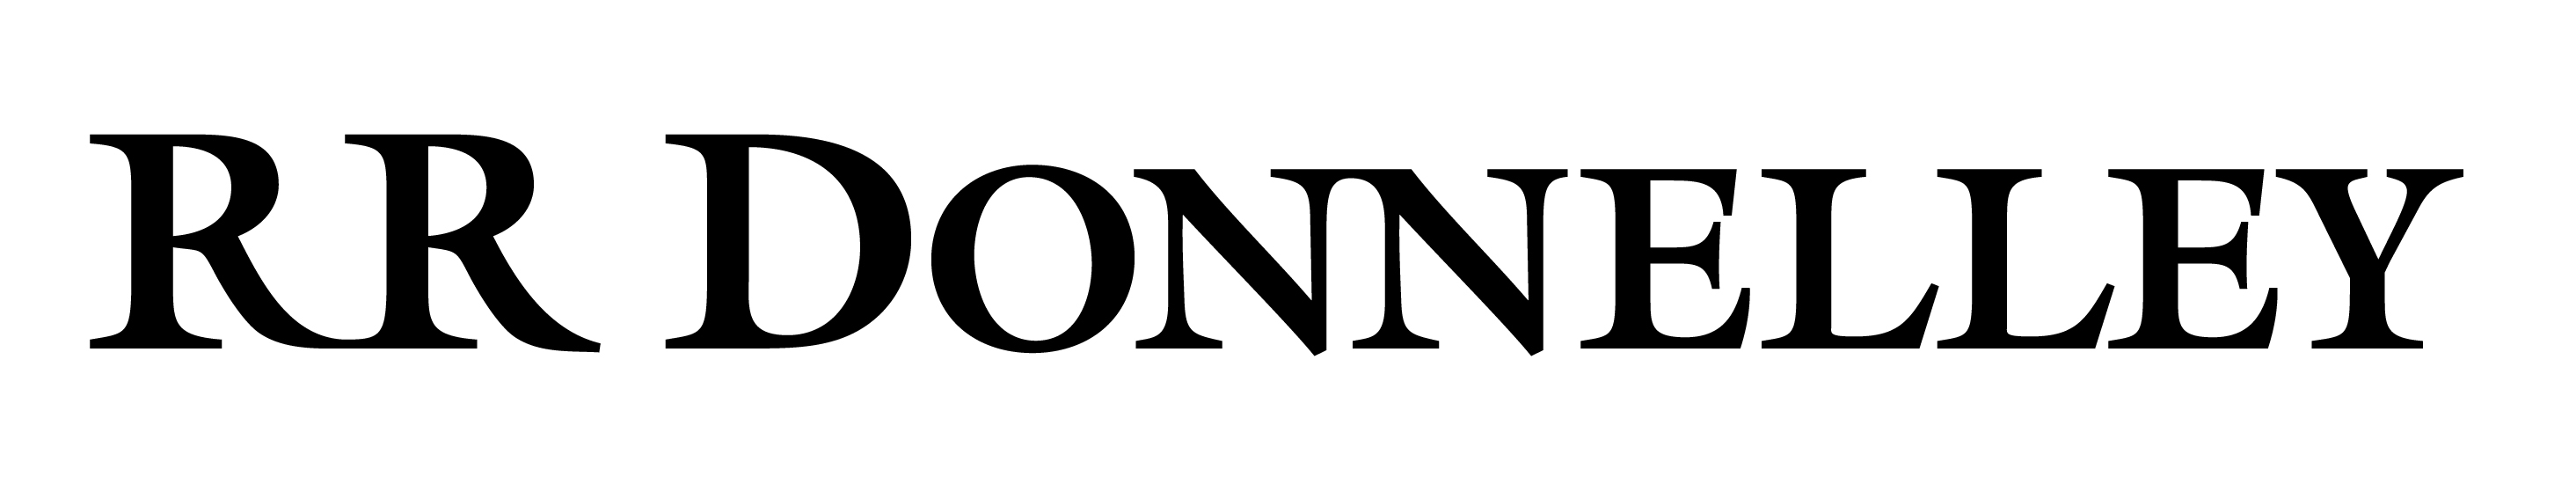 RR Donnelley & Sons Co logo